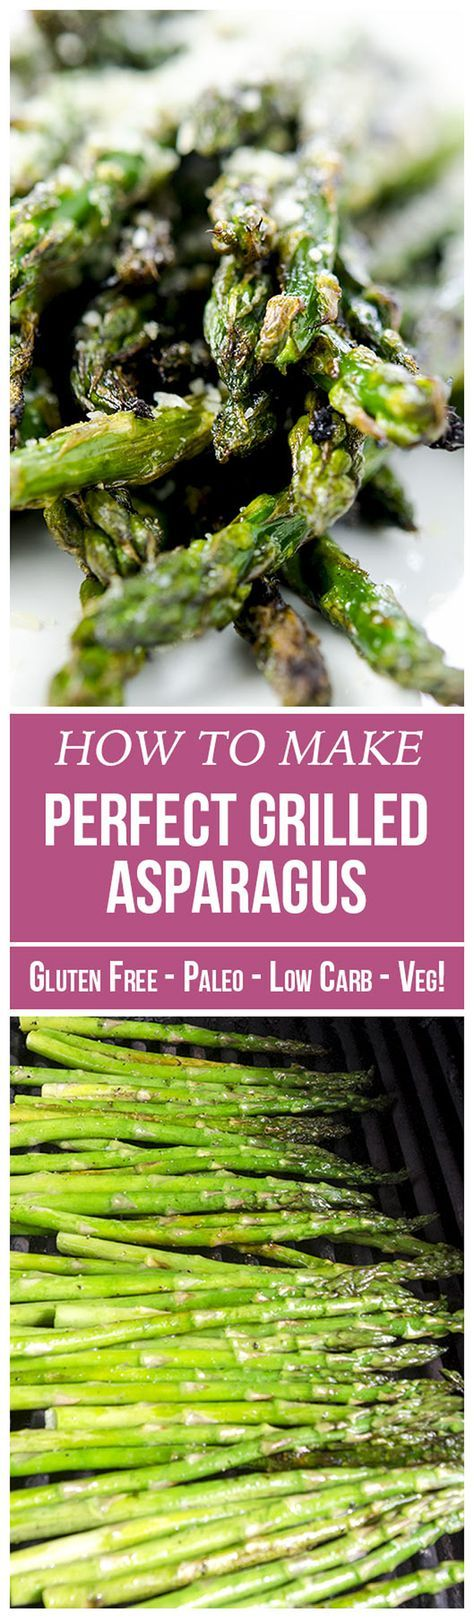 Have you ever had crispy grilled asparagus dusted in parmesan and asiago? If not, you need to try this grilled asparagus recipe.